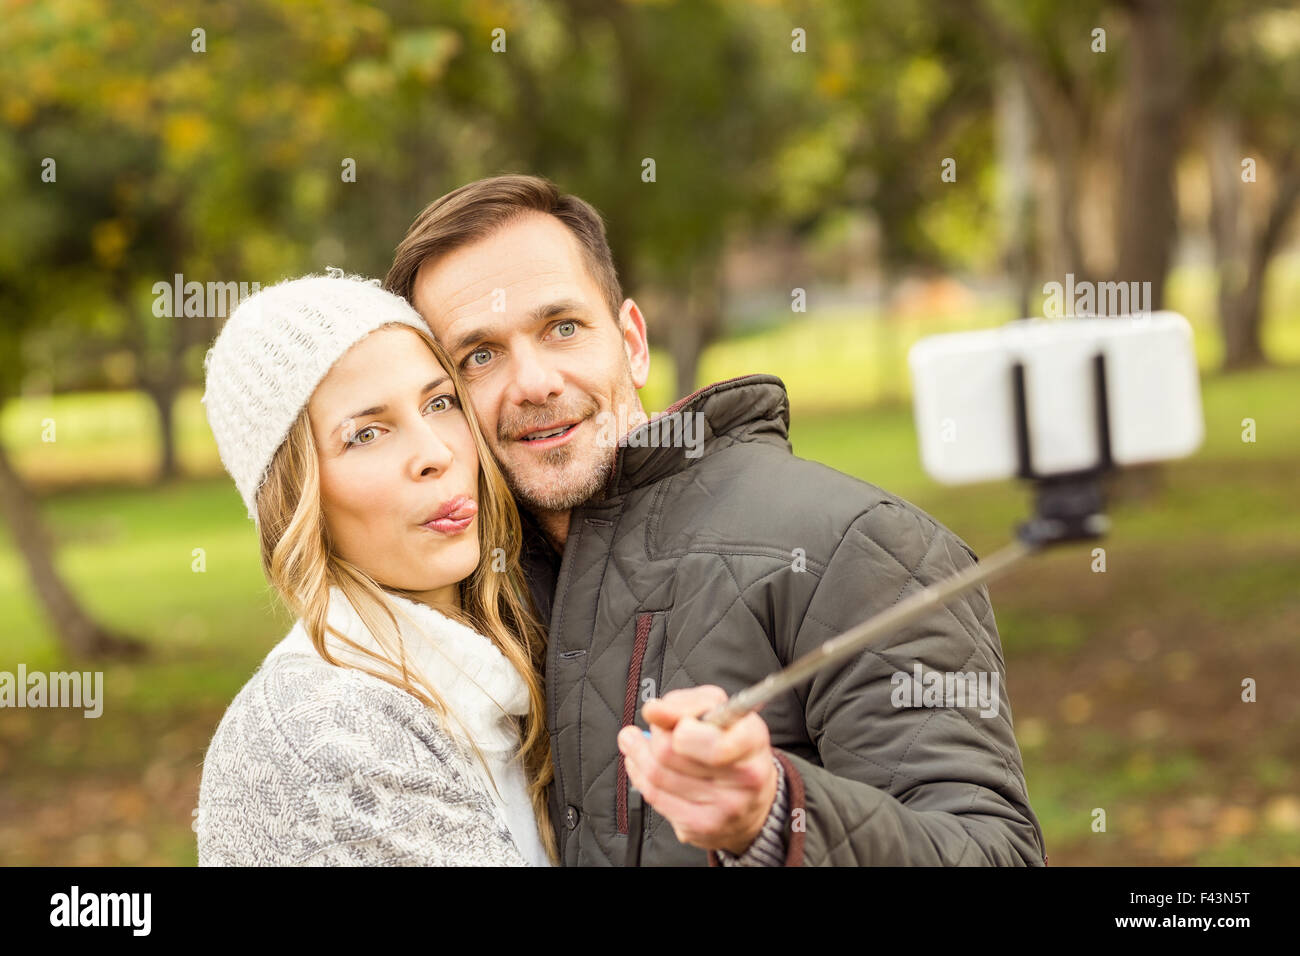 Smiling young couple taking selfies - Stock Image